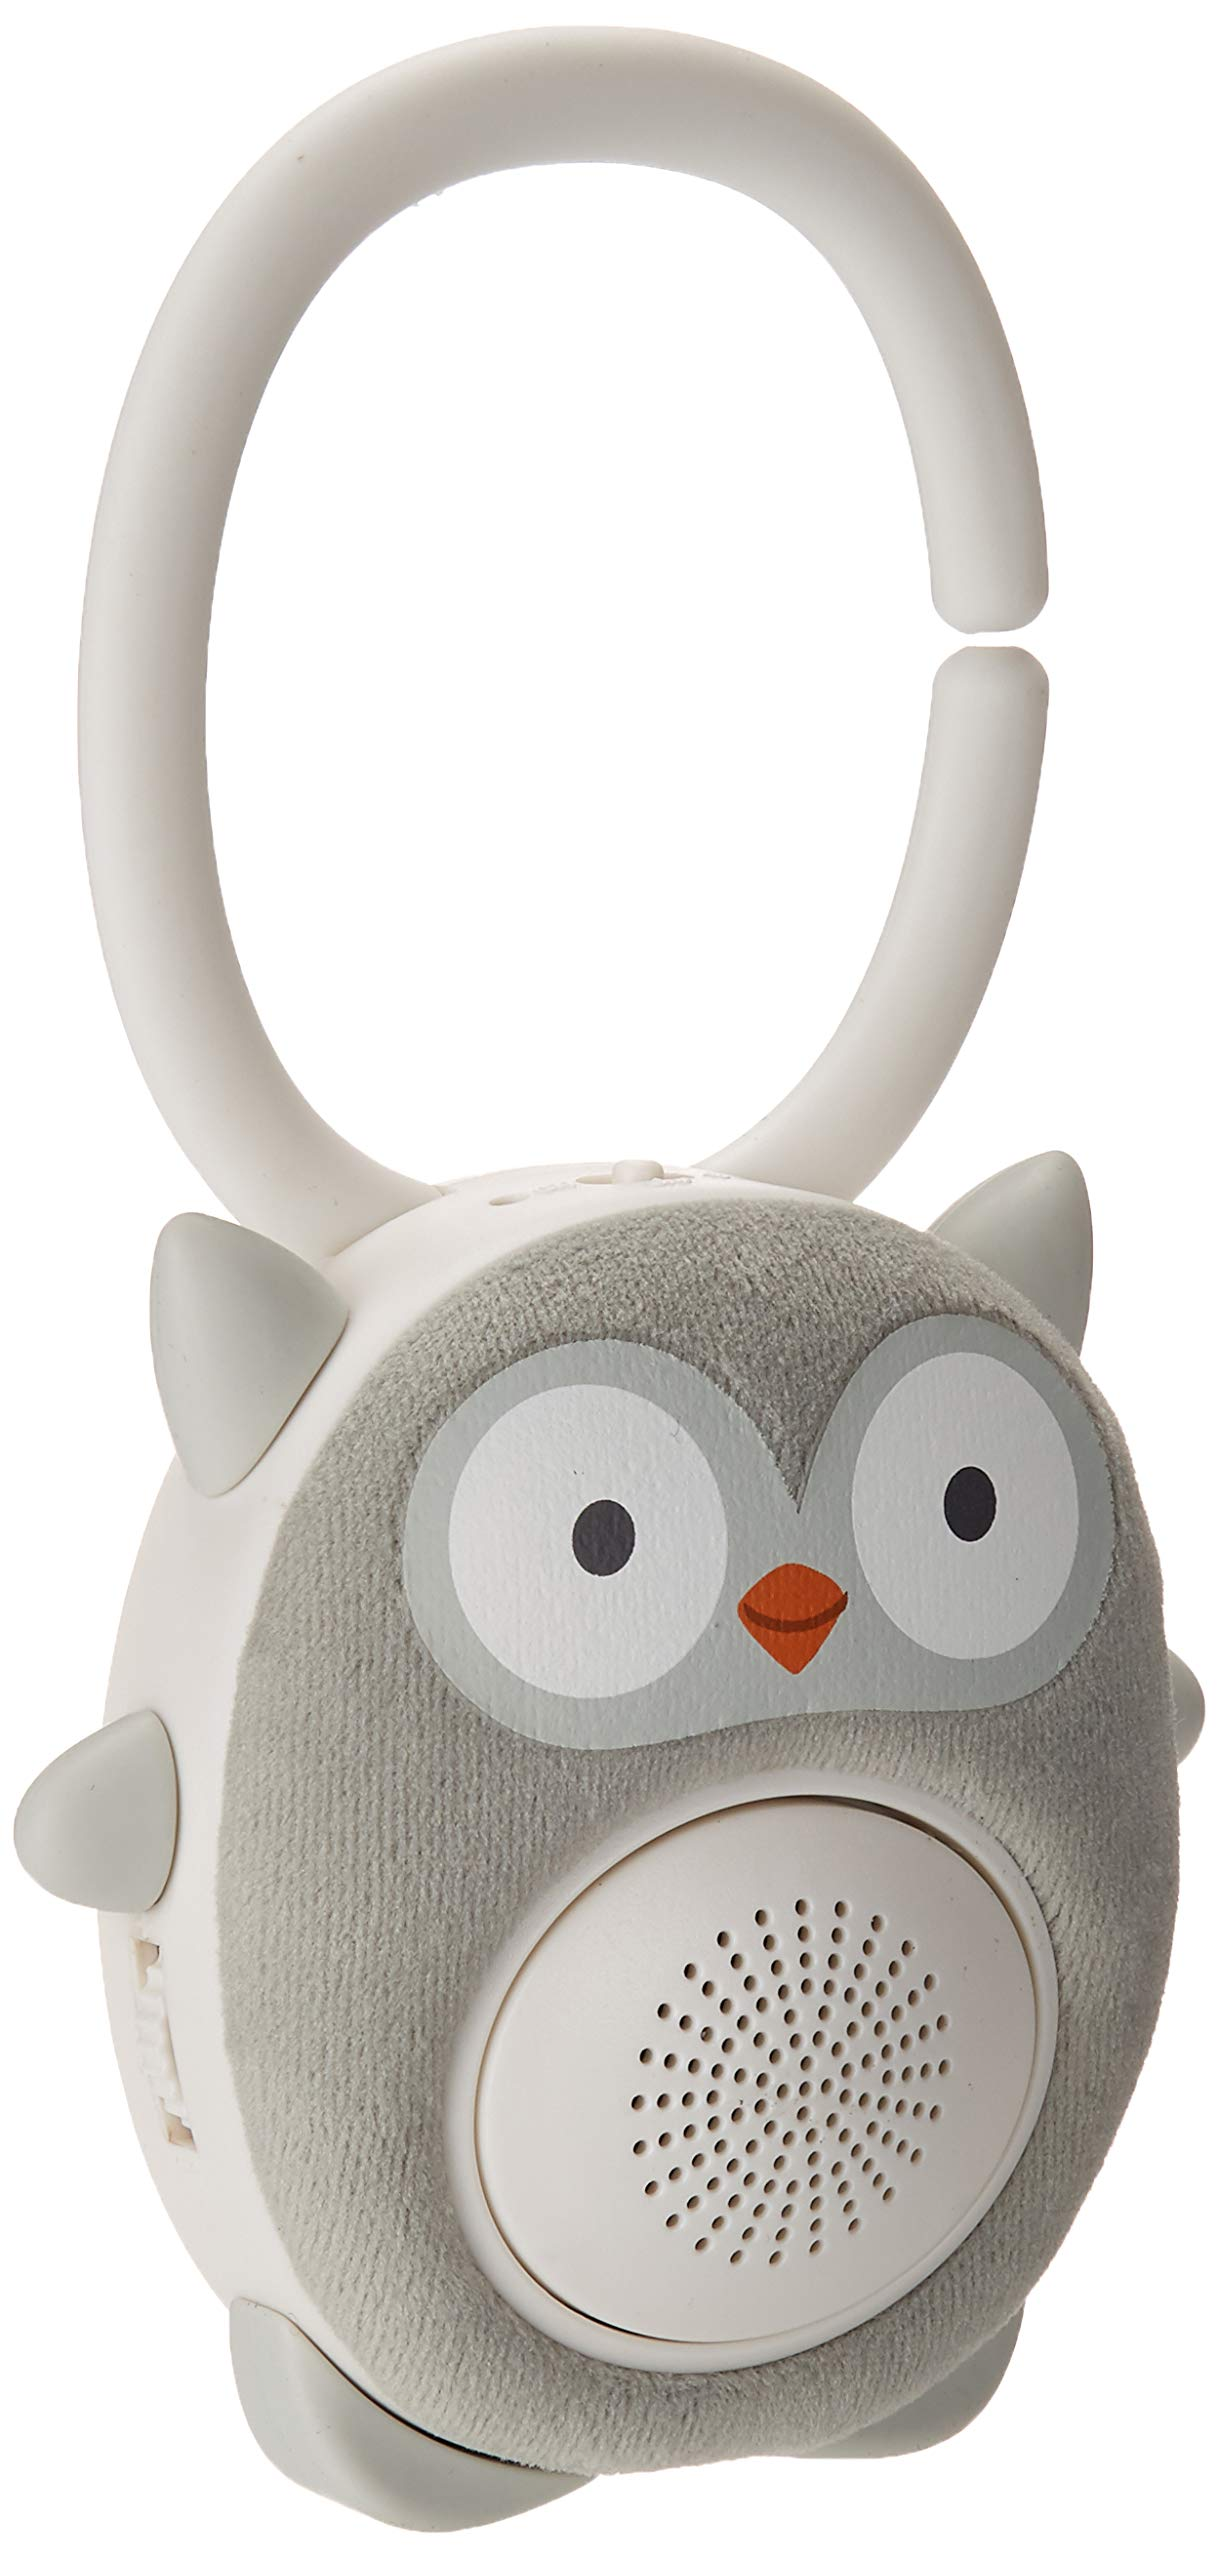 WavHello SoundBub, White Noise Machine and Bluetooth Speaker | Portable and Rechargeable Baby Sleep Sound Soother - Ollie The Owl, Grey by Wavhello